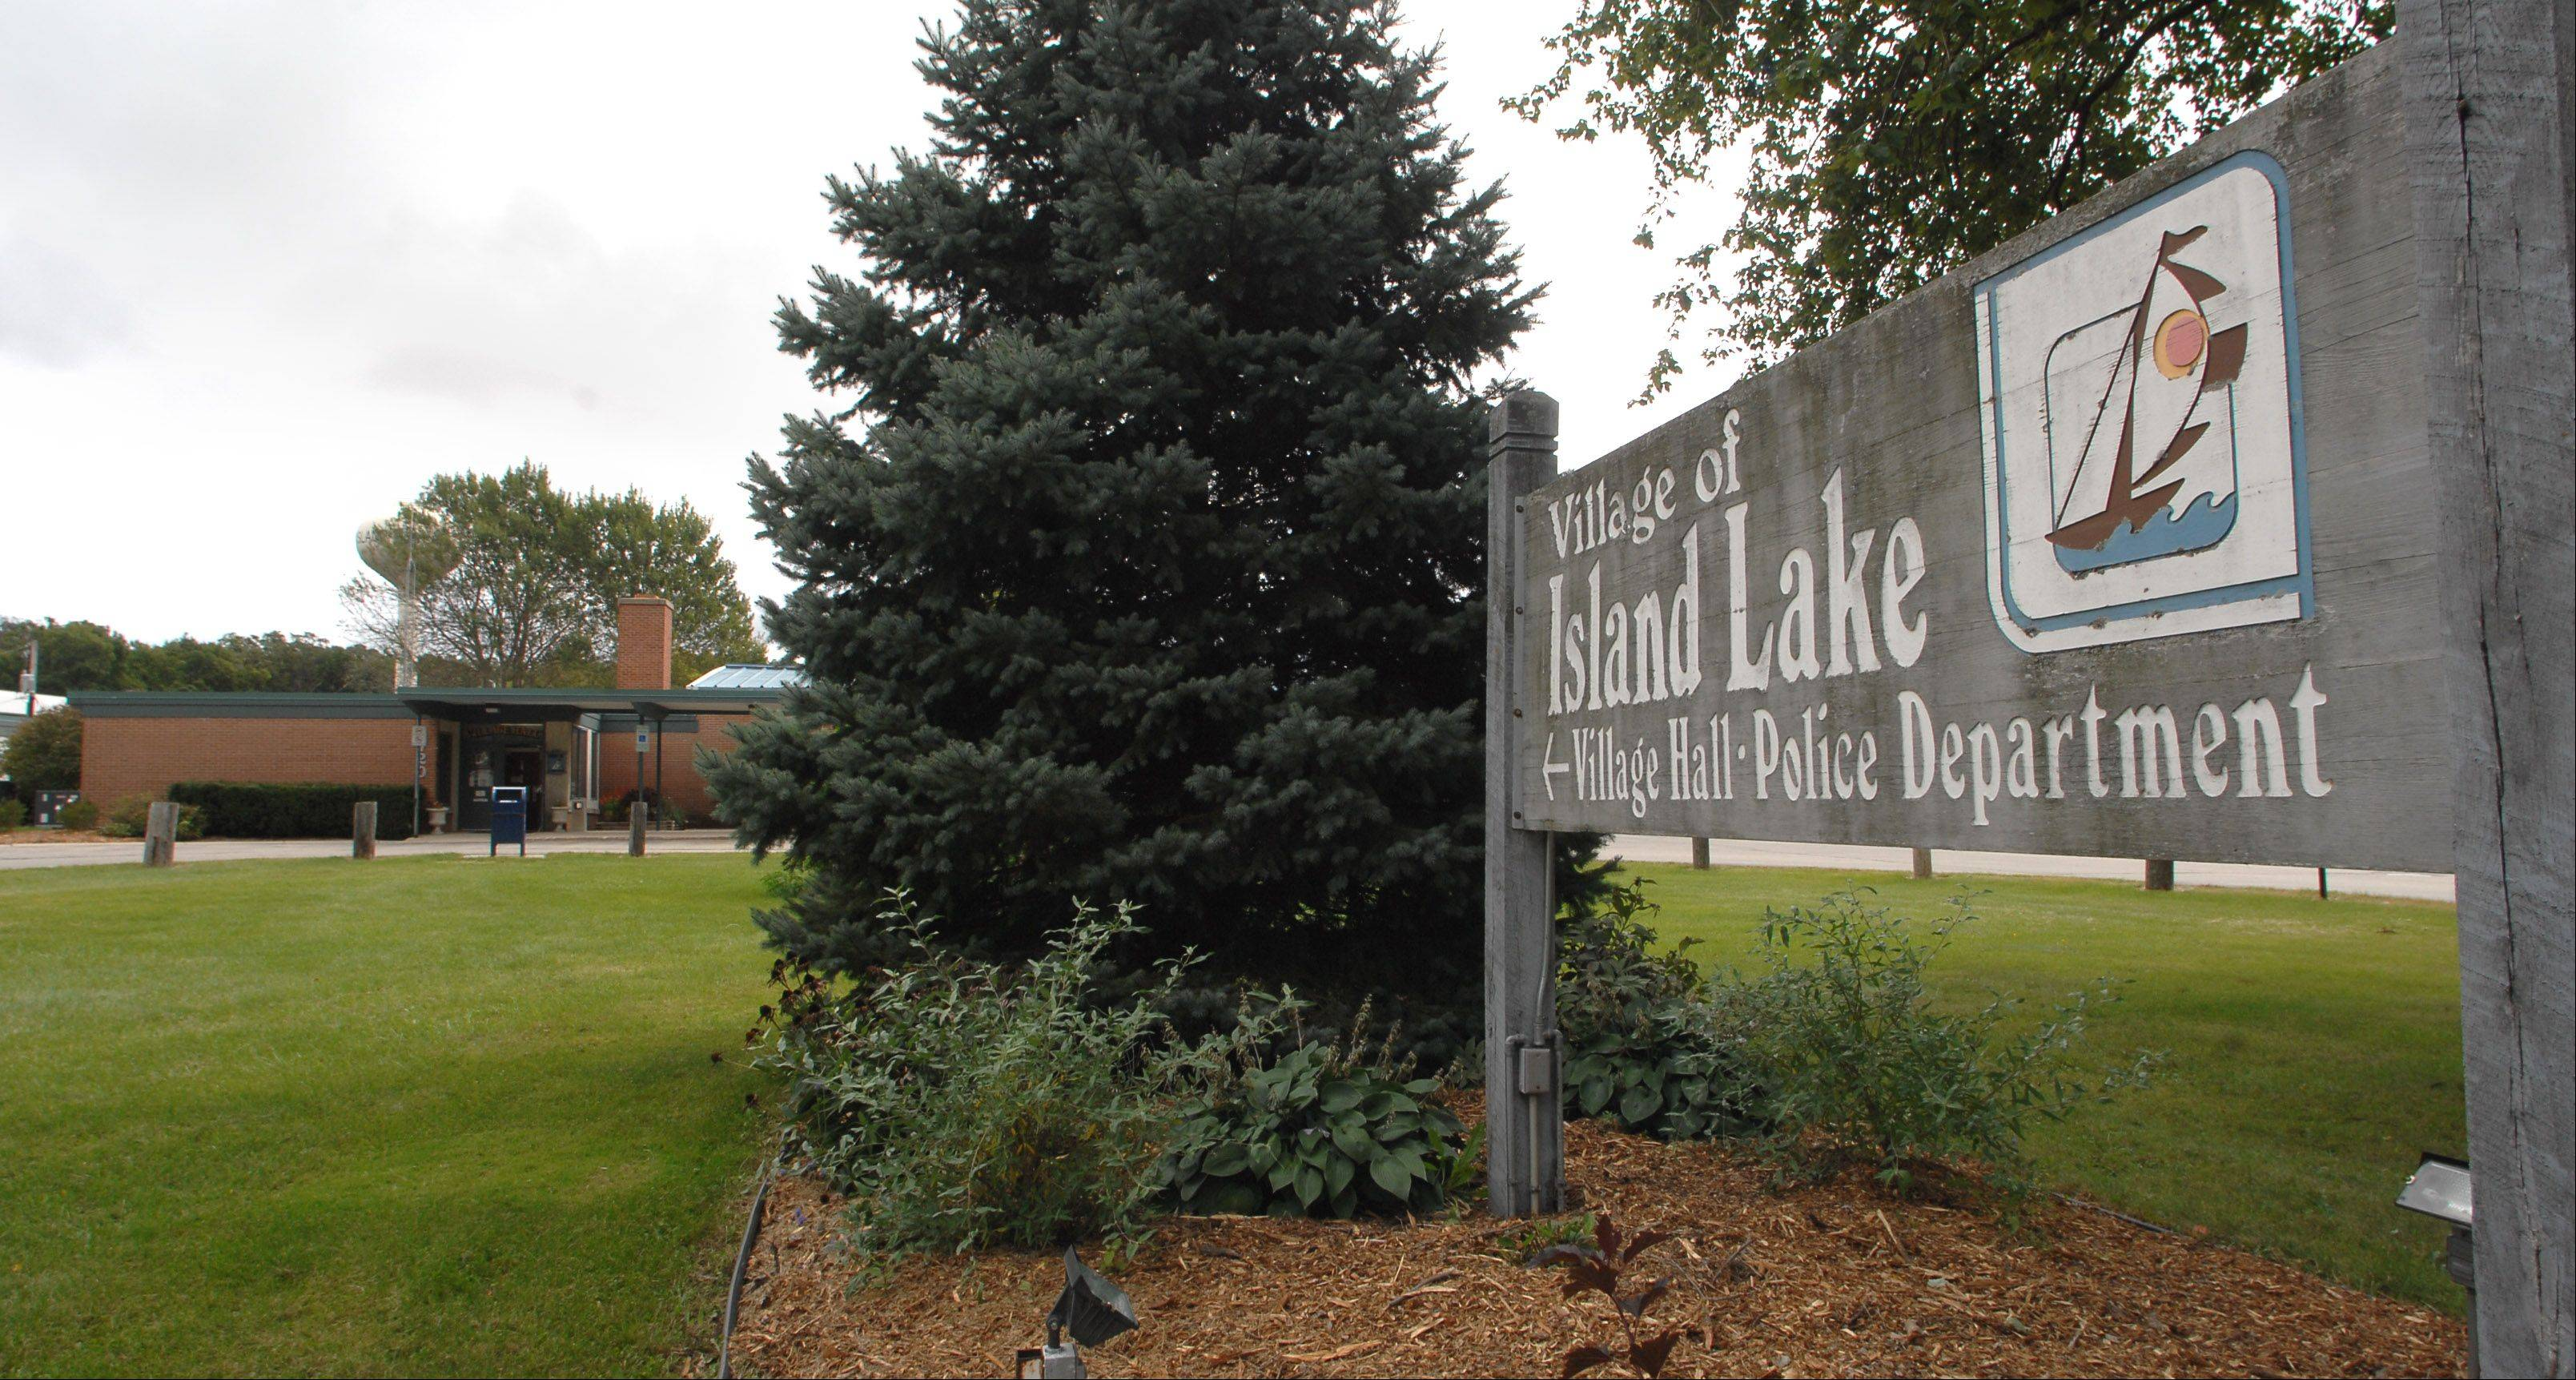 Attorney general rejects complaints from ex-cop about Island Lake's Facebook page